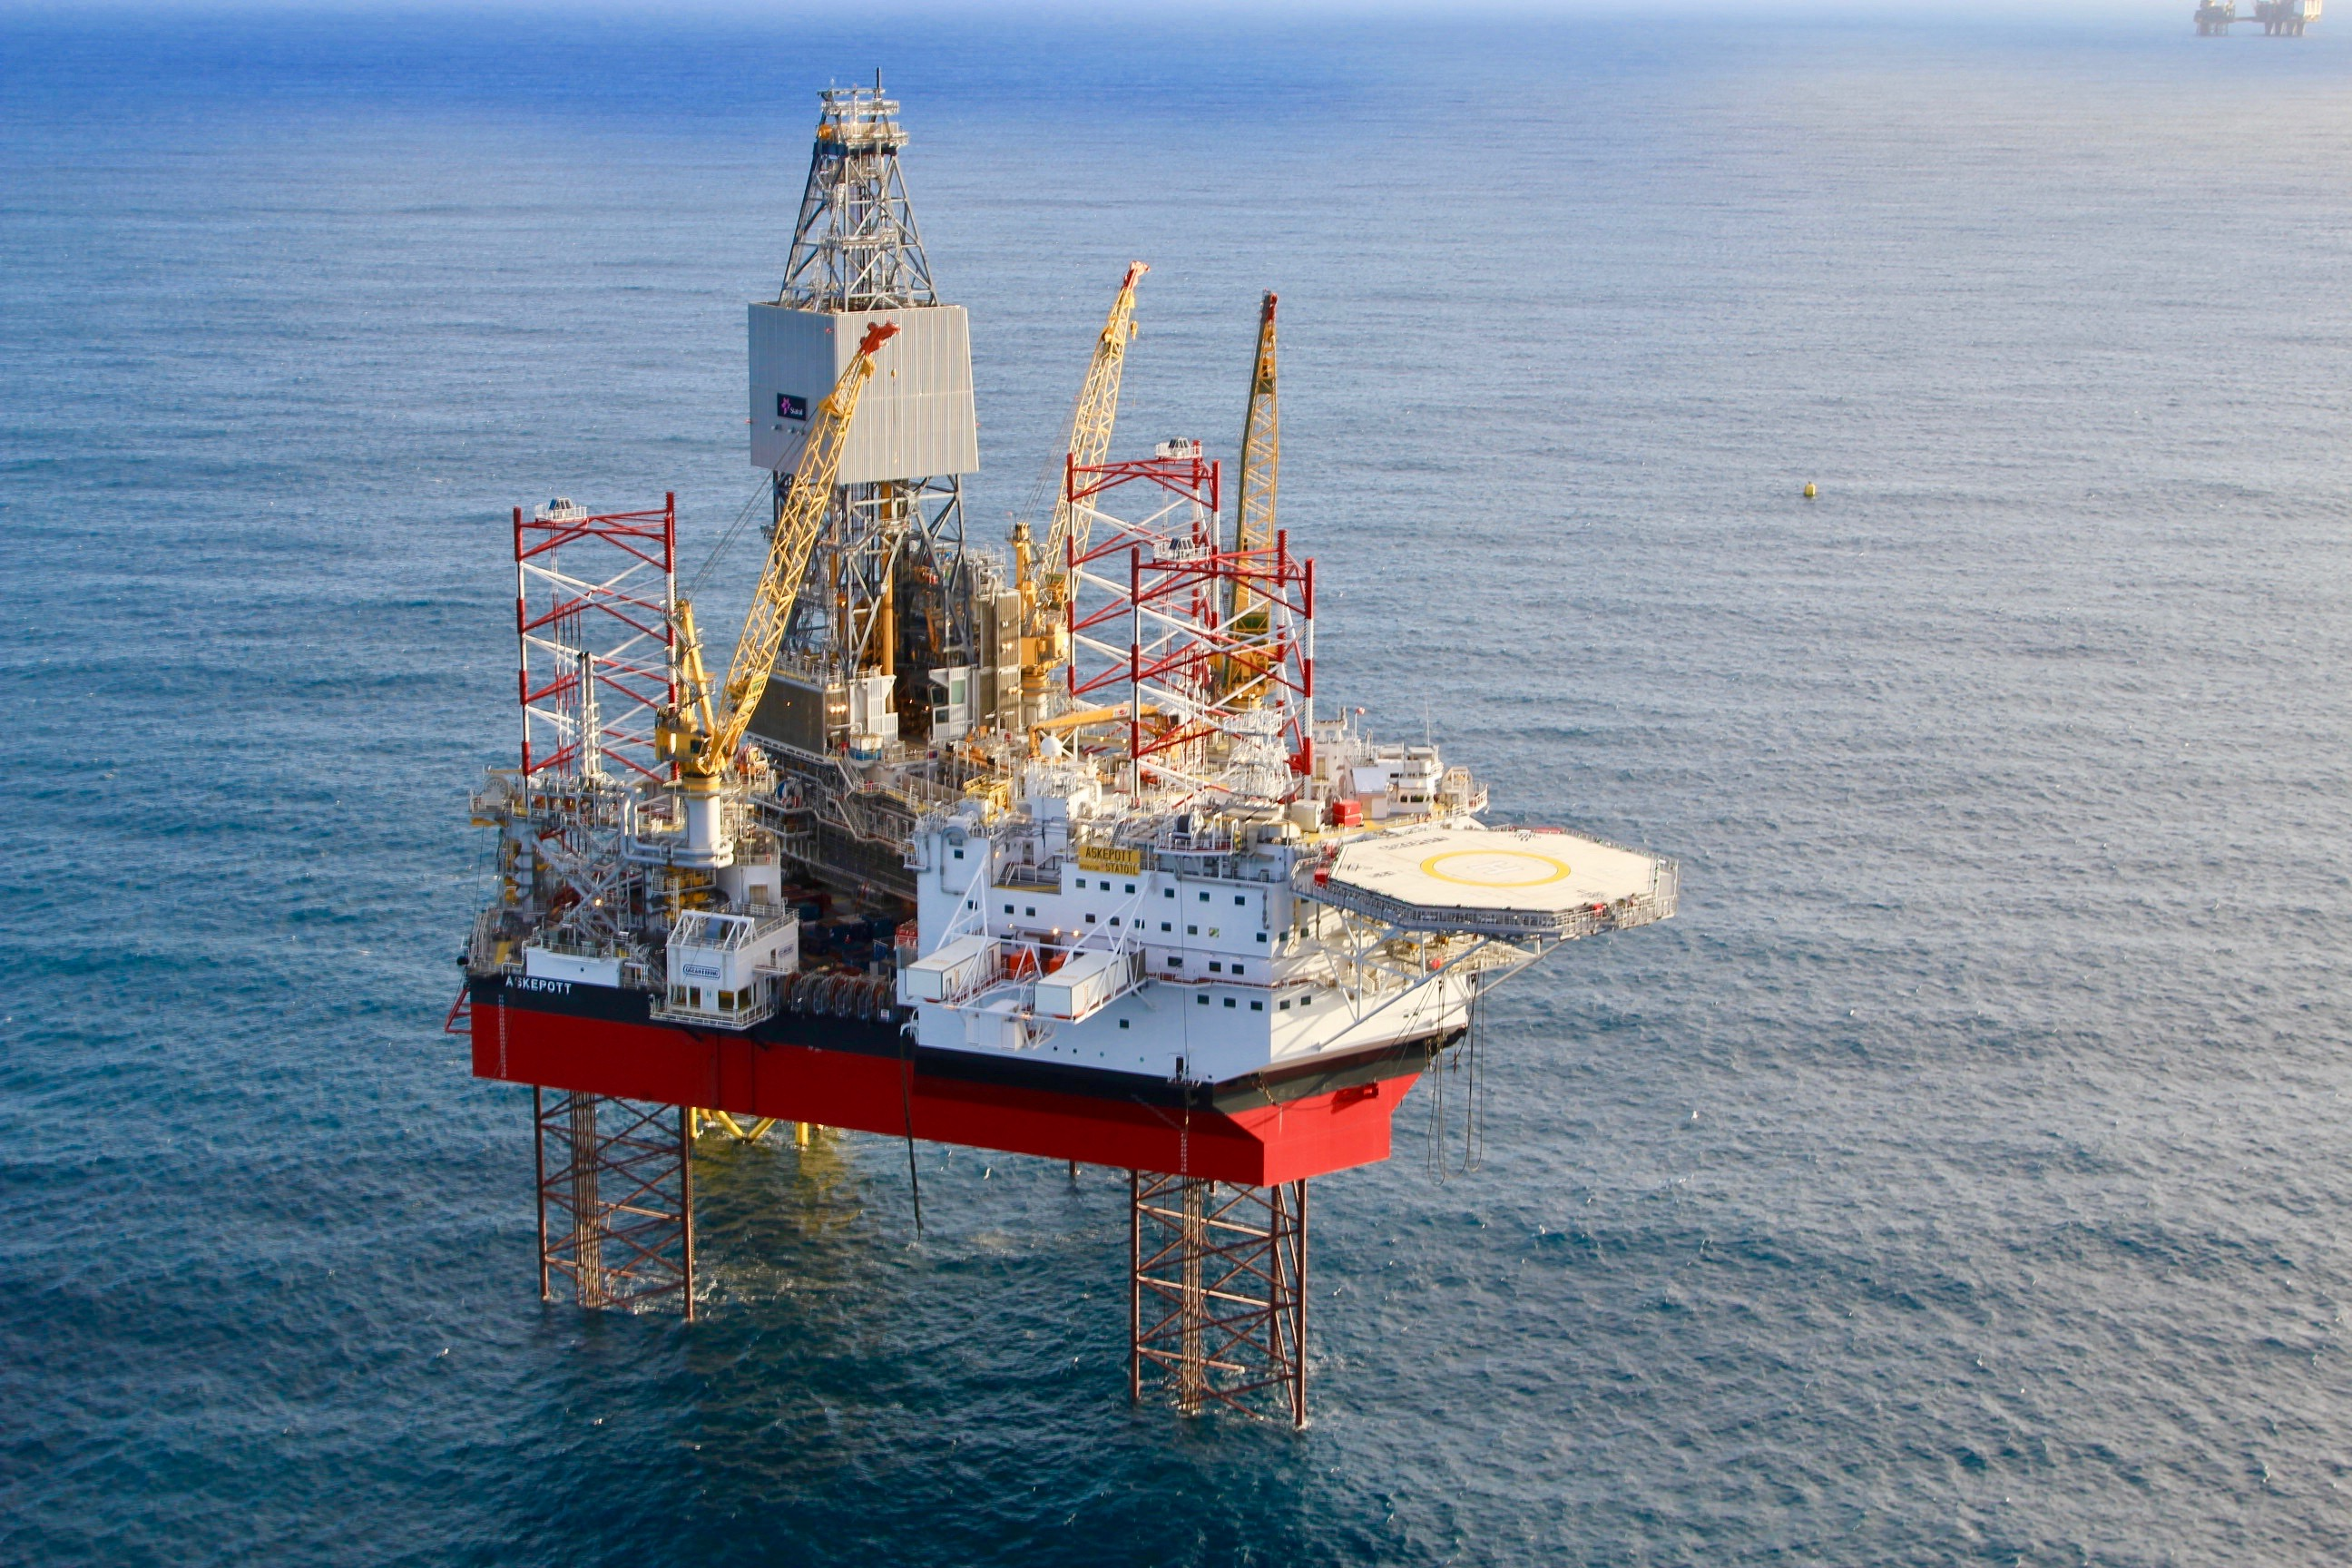 Askepott Equinor Norway Rig